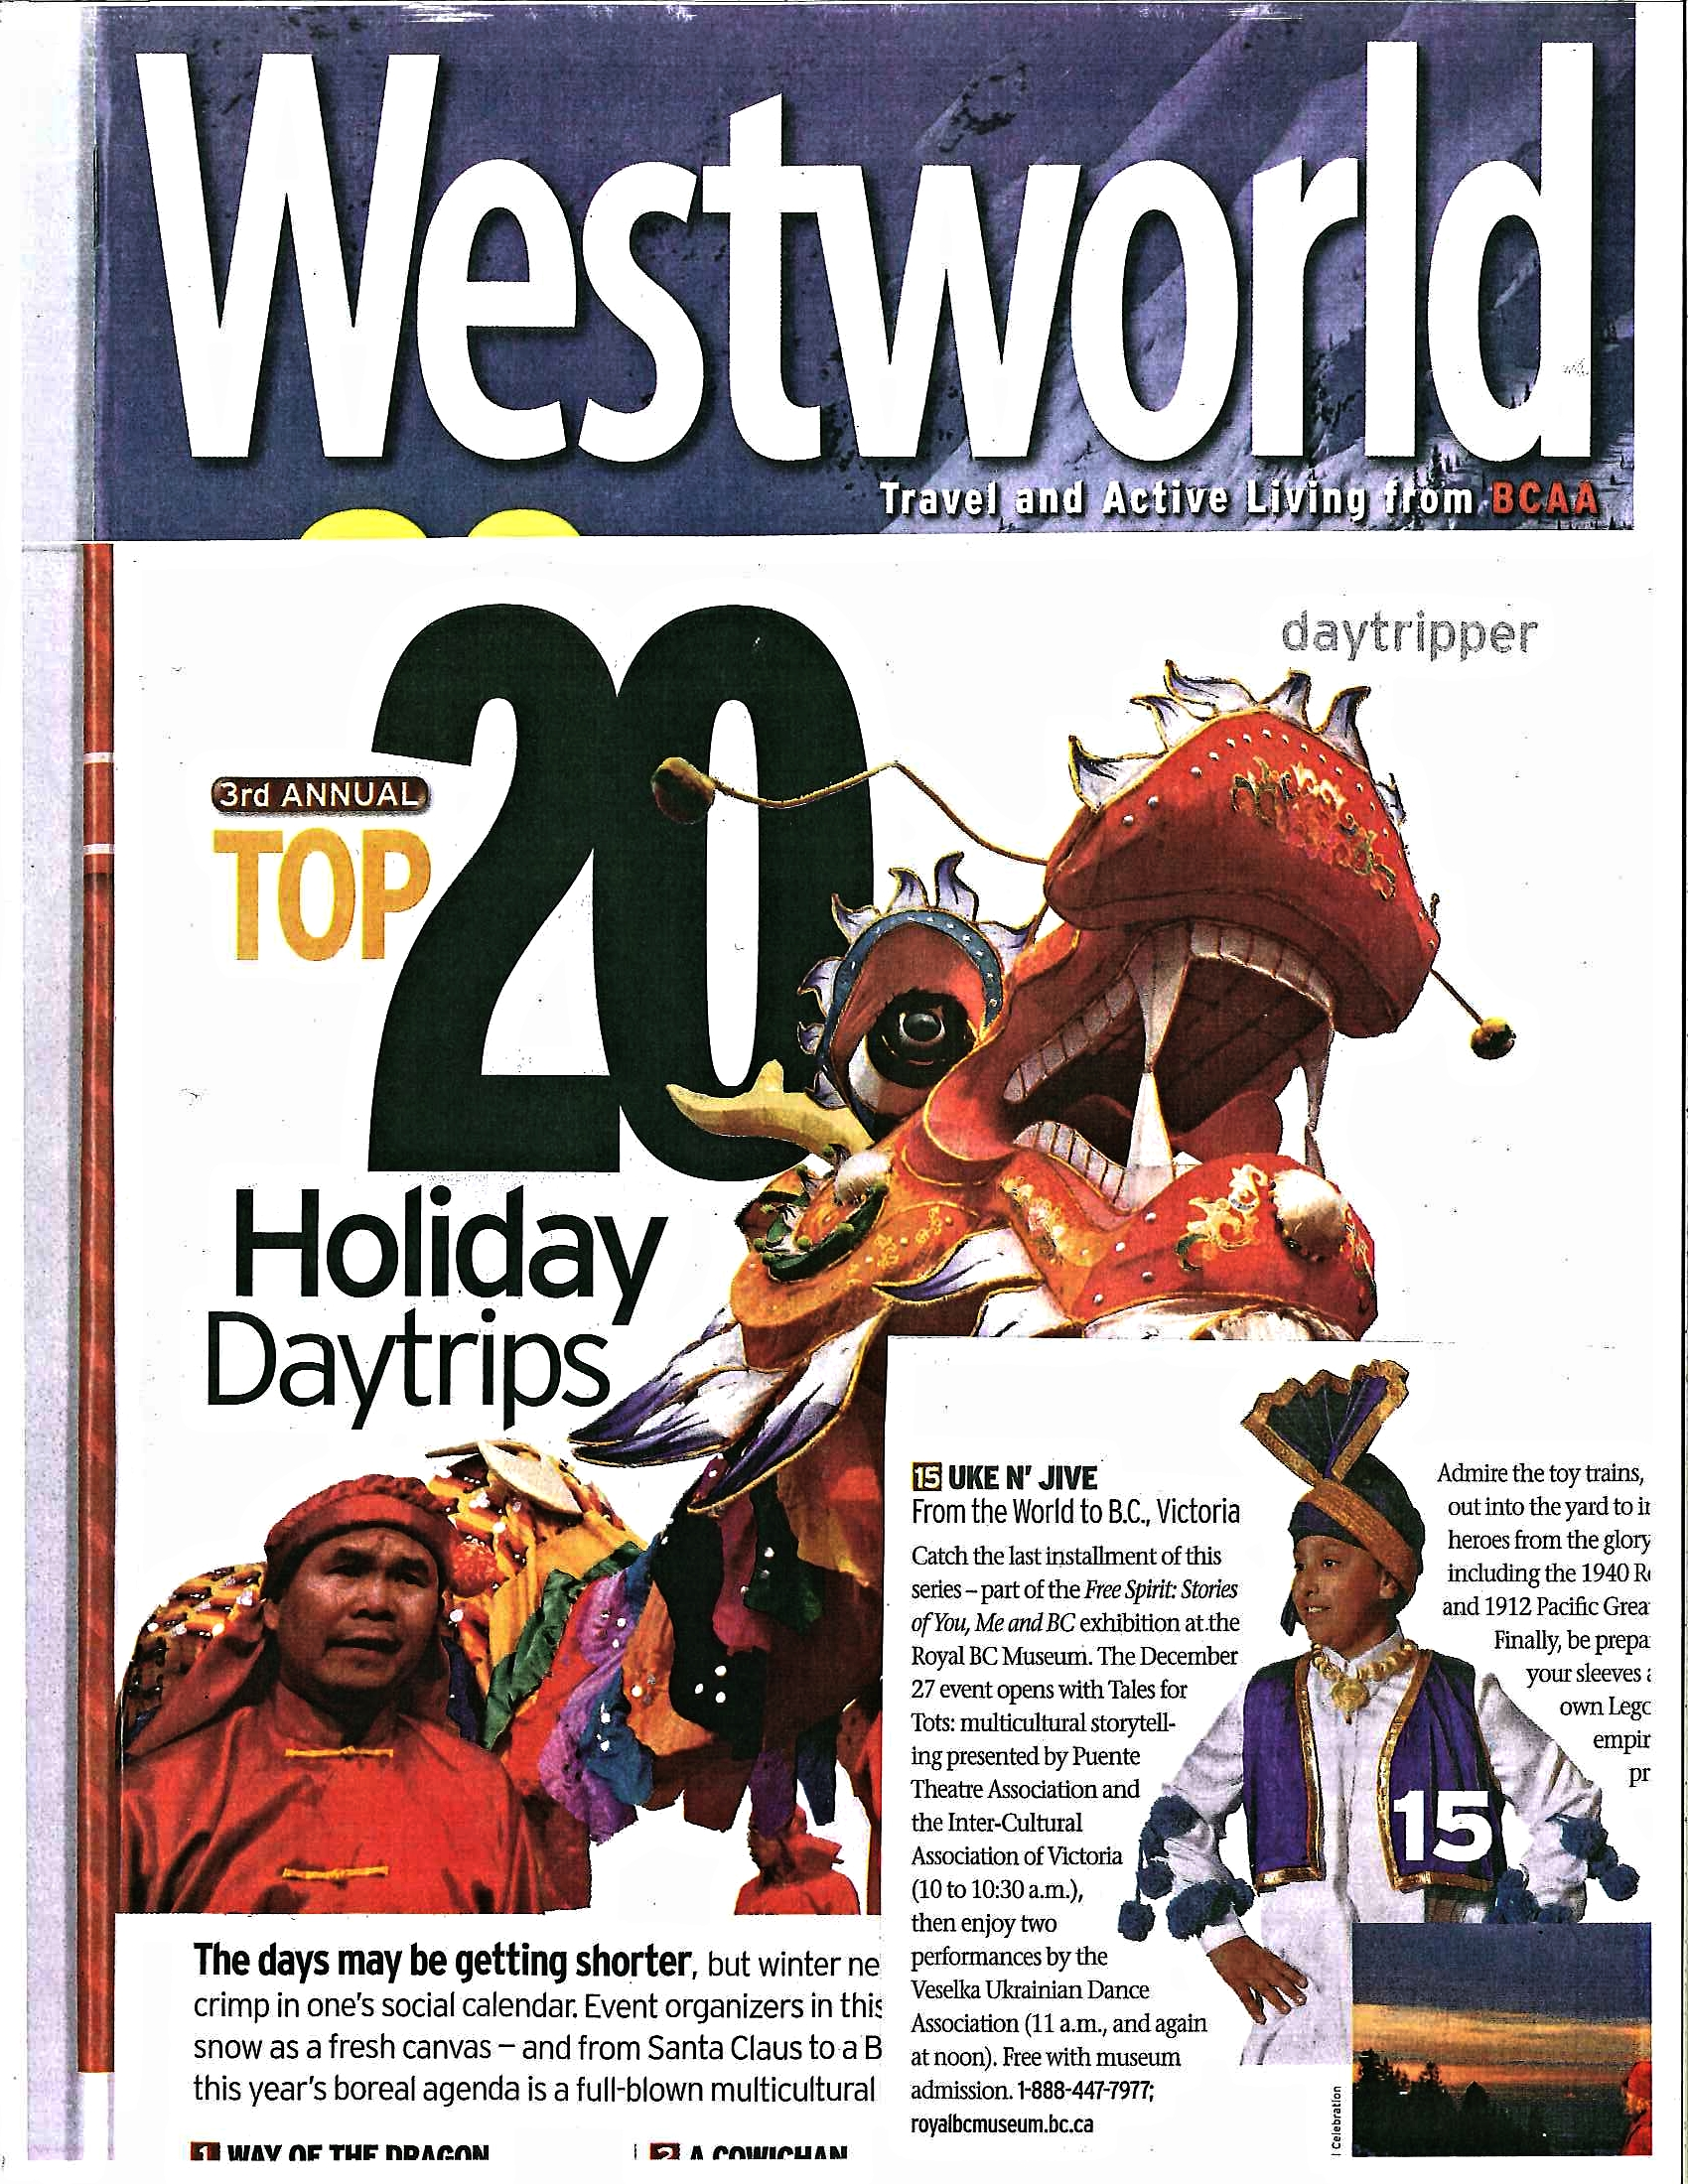 Harjot Gill featured on the front cover of the Westworld Magazine representing the Royal BC Museum and Victoria as the top 20 destinations to visit on the west coast.